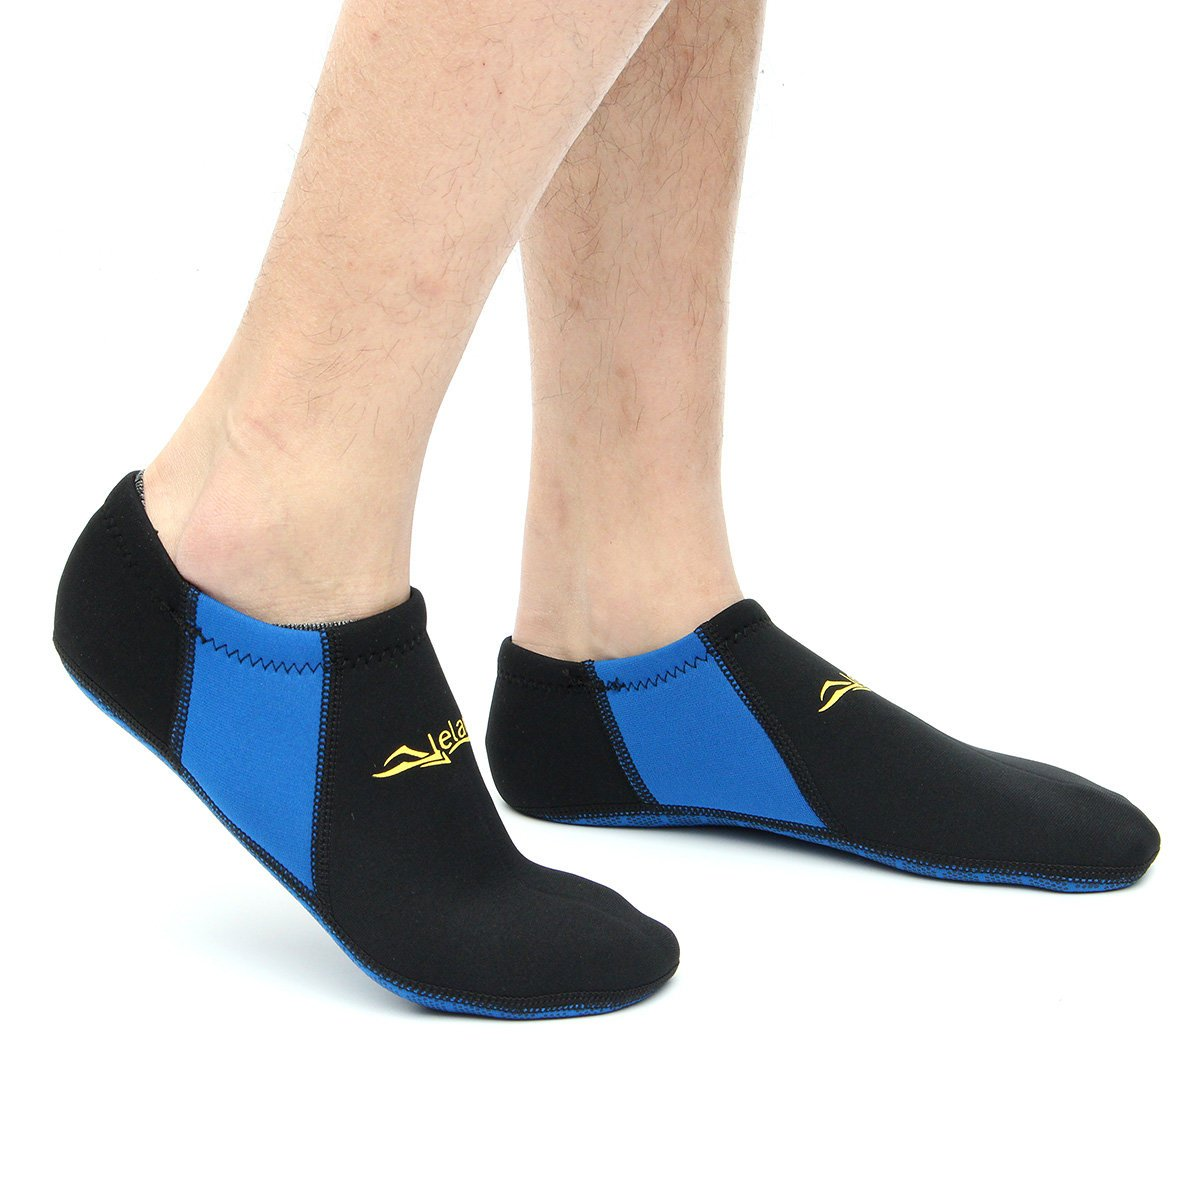 Outdoor Swimming Socks / Beach Shoes